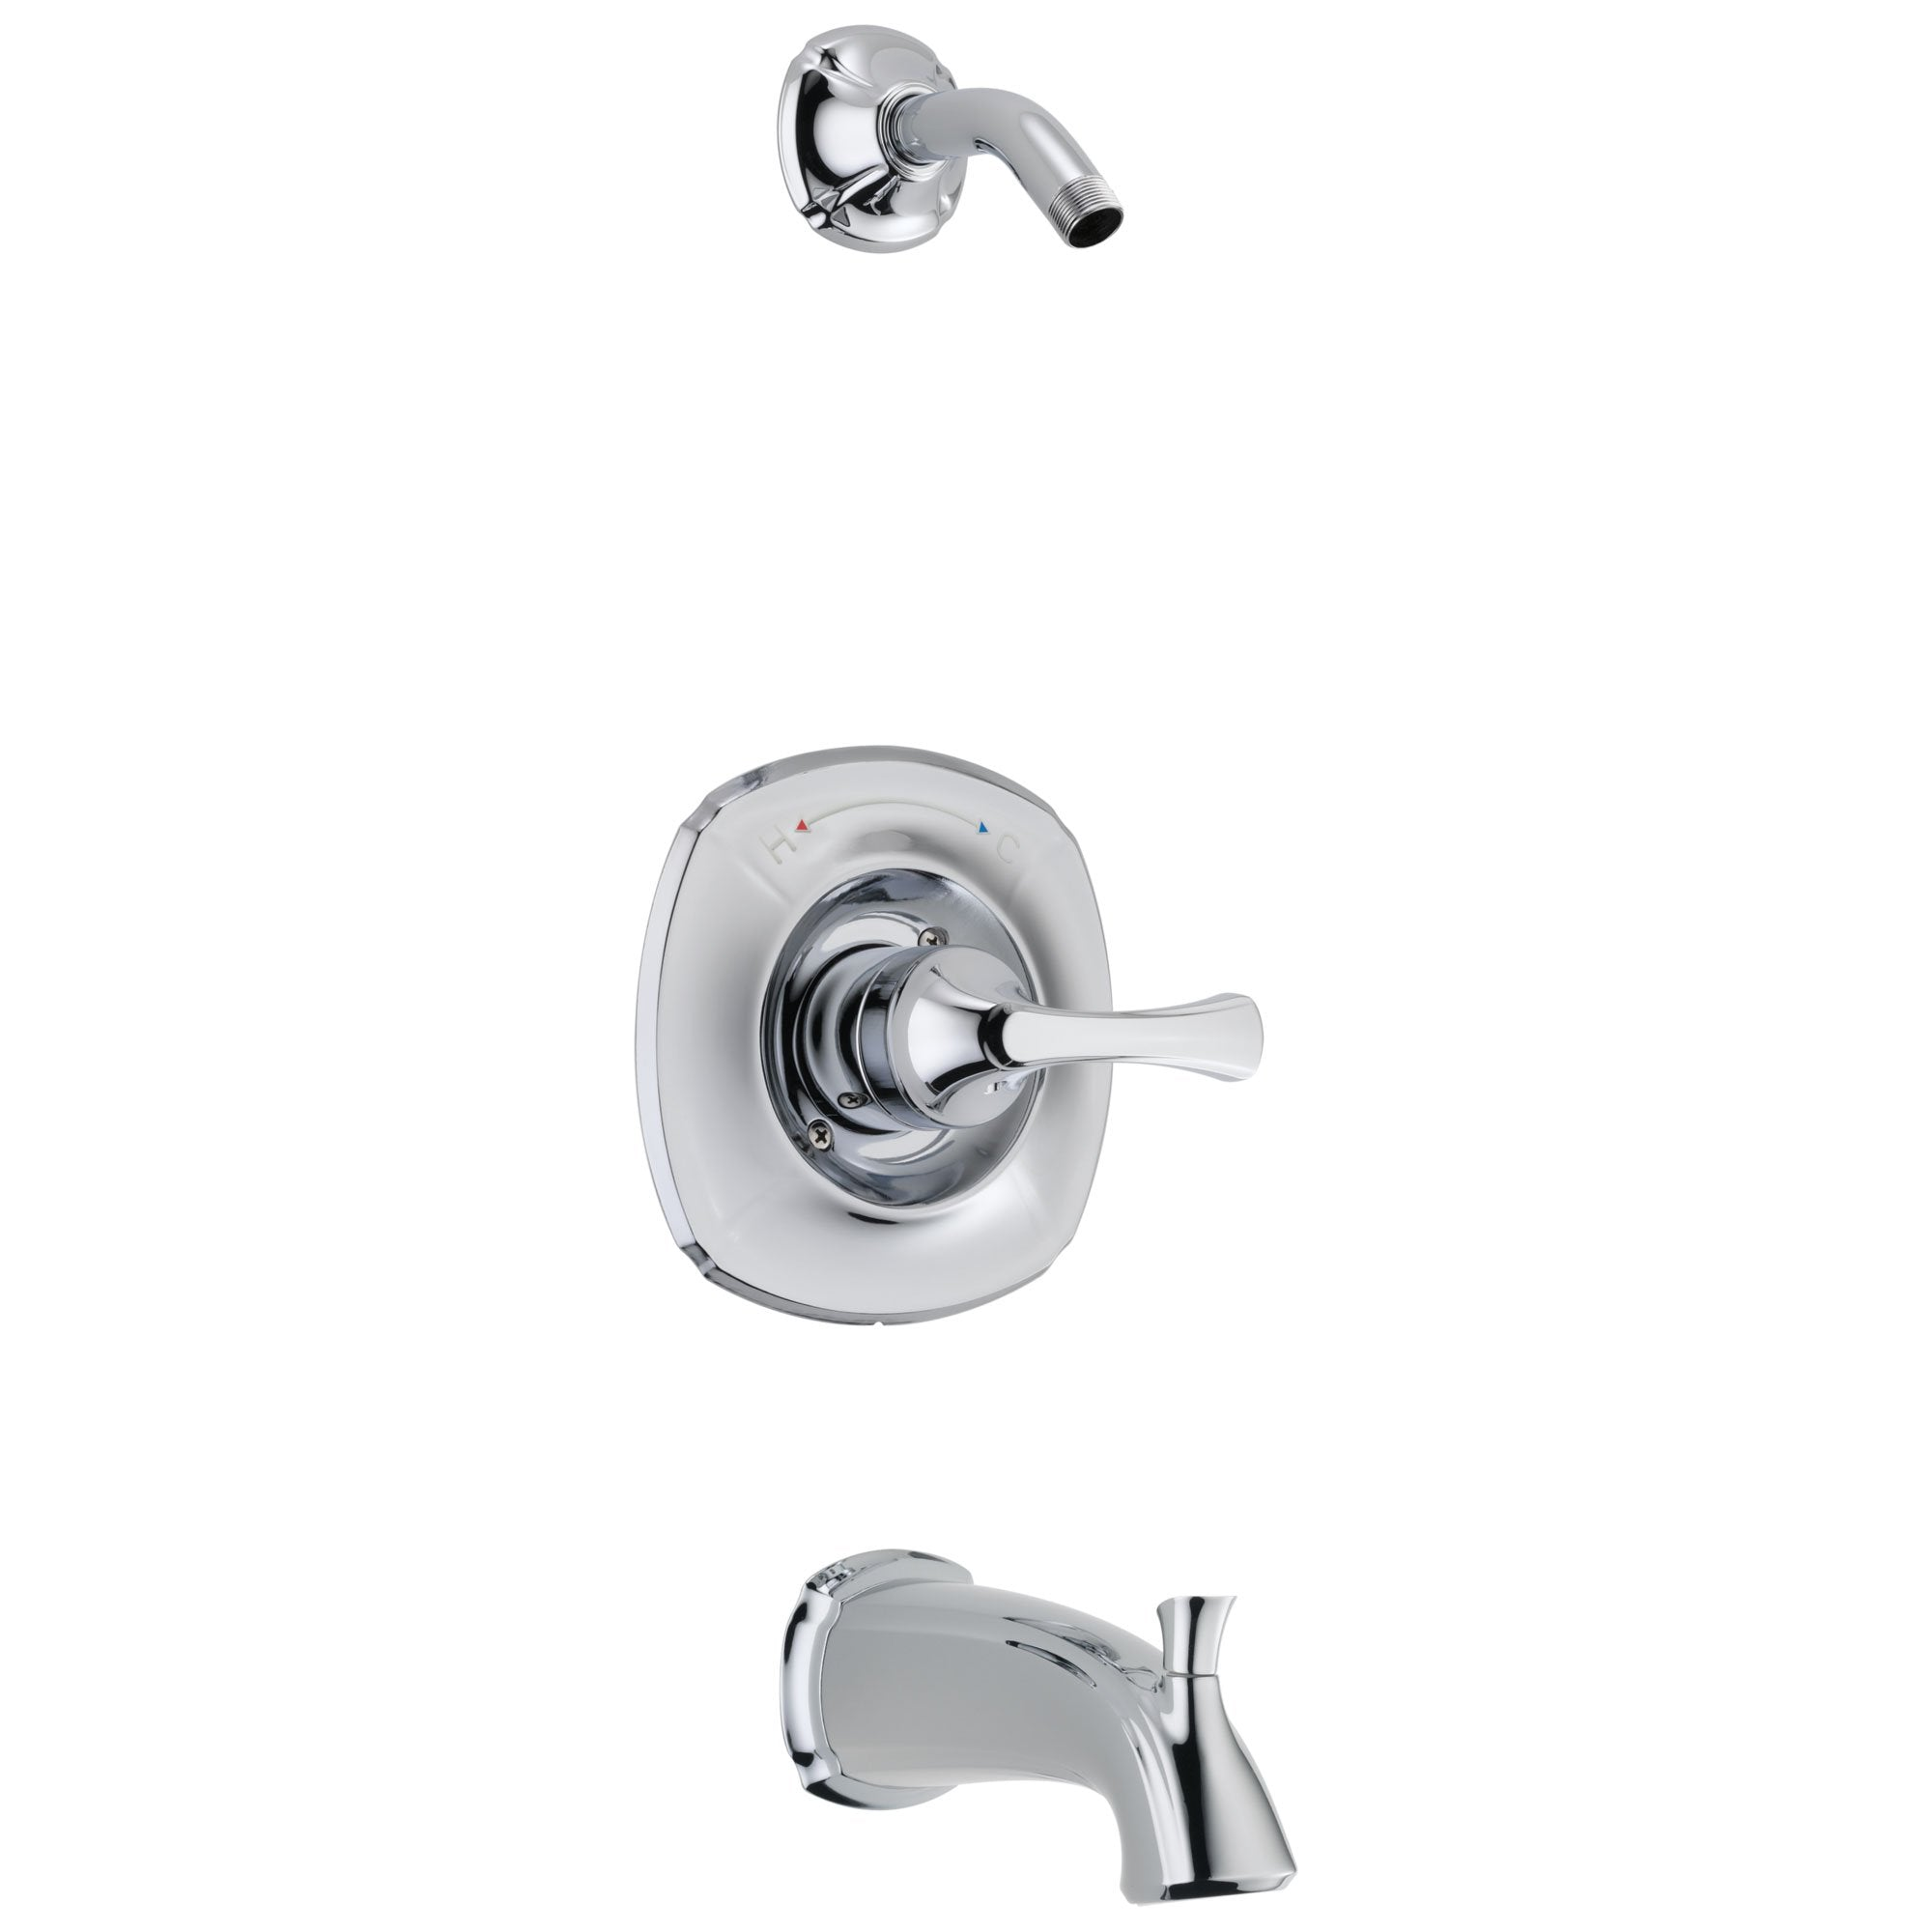 Delta Addison Collection Chrome Finish Monitor 14 Series Bath Tub and Shower Faucet - Less Showerhead Includes Trim Kit Rough Valve without Stops D2375V